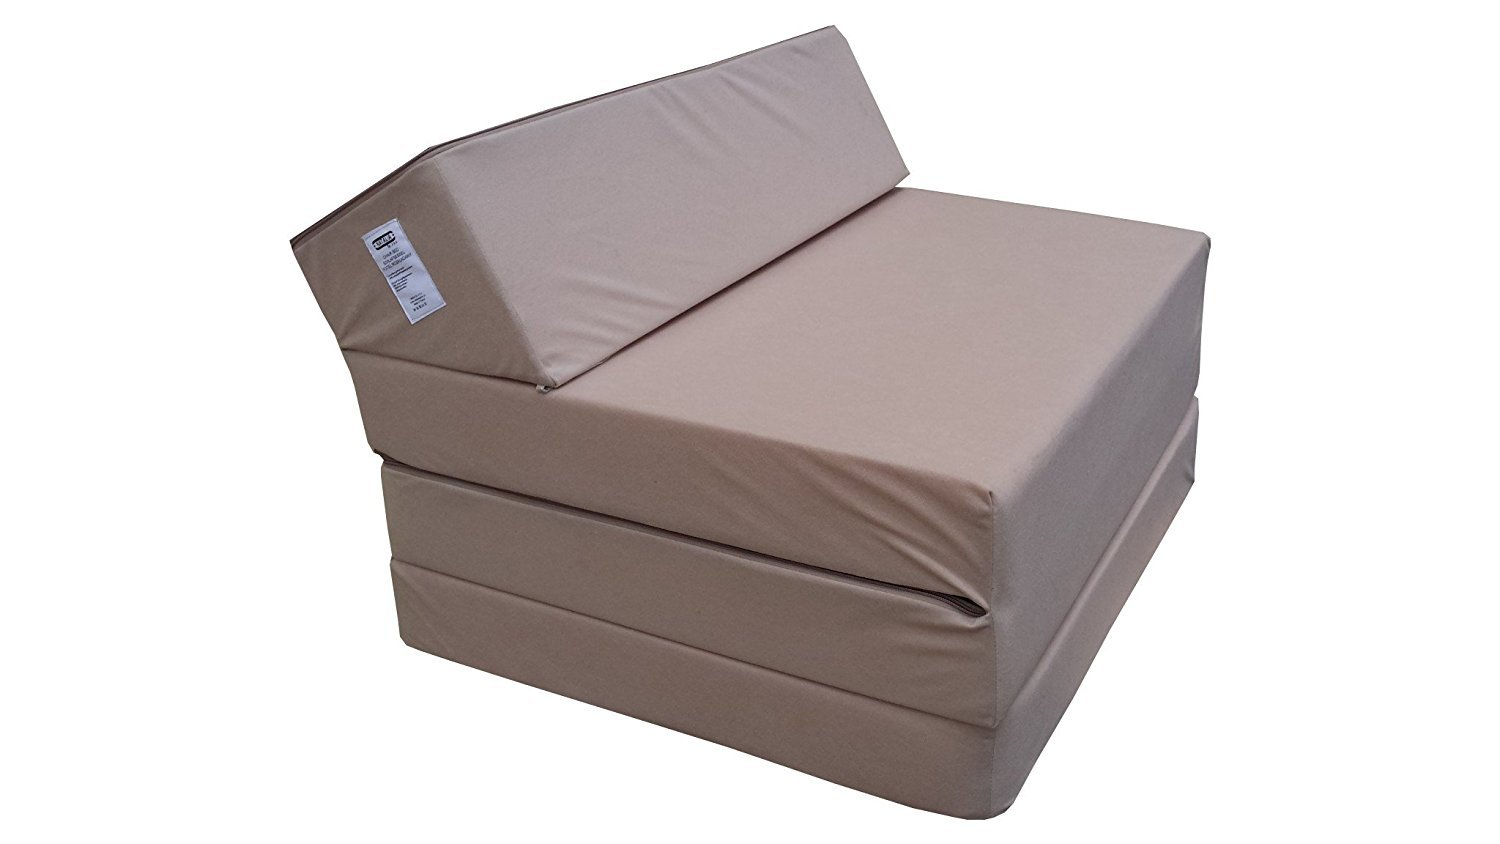 Fold Out Guest Chair Z Bed Futon Sofa for Adult and Kids folding mattress  (Beige)